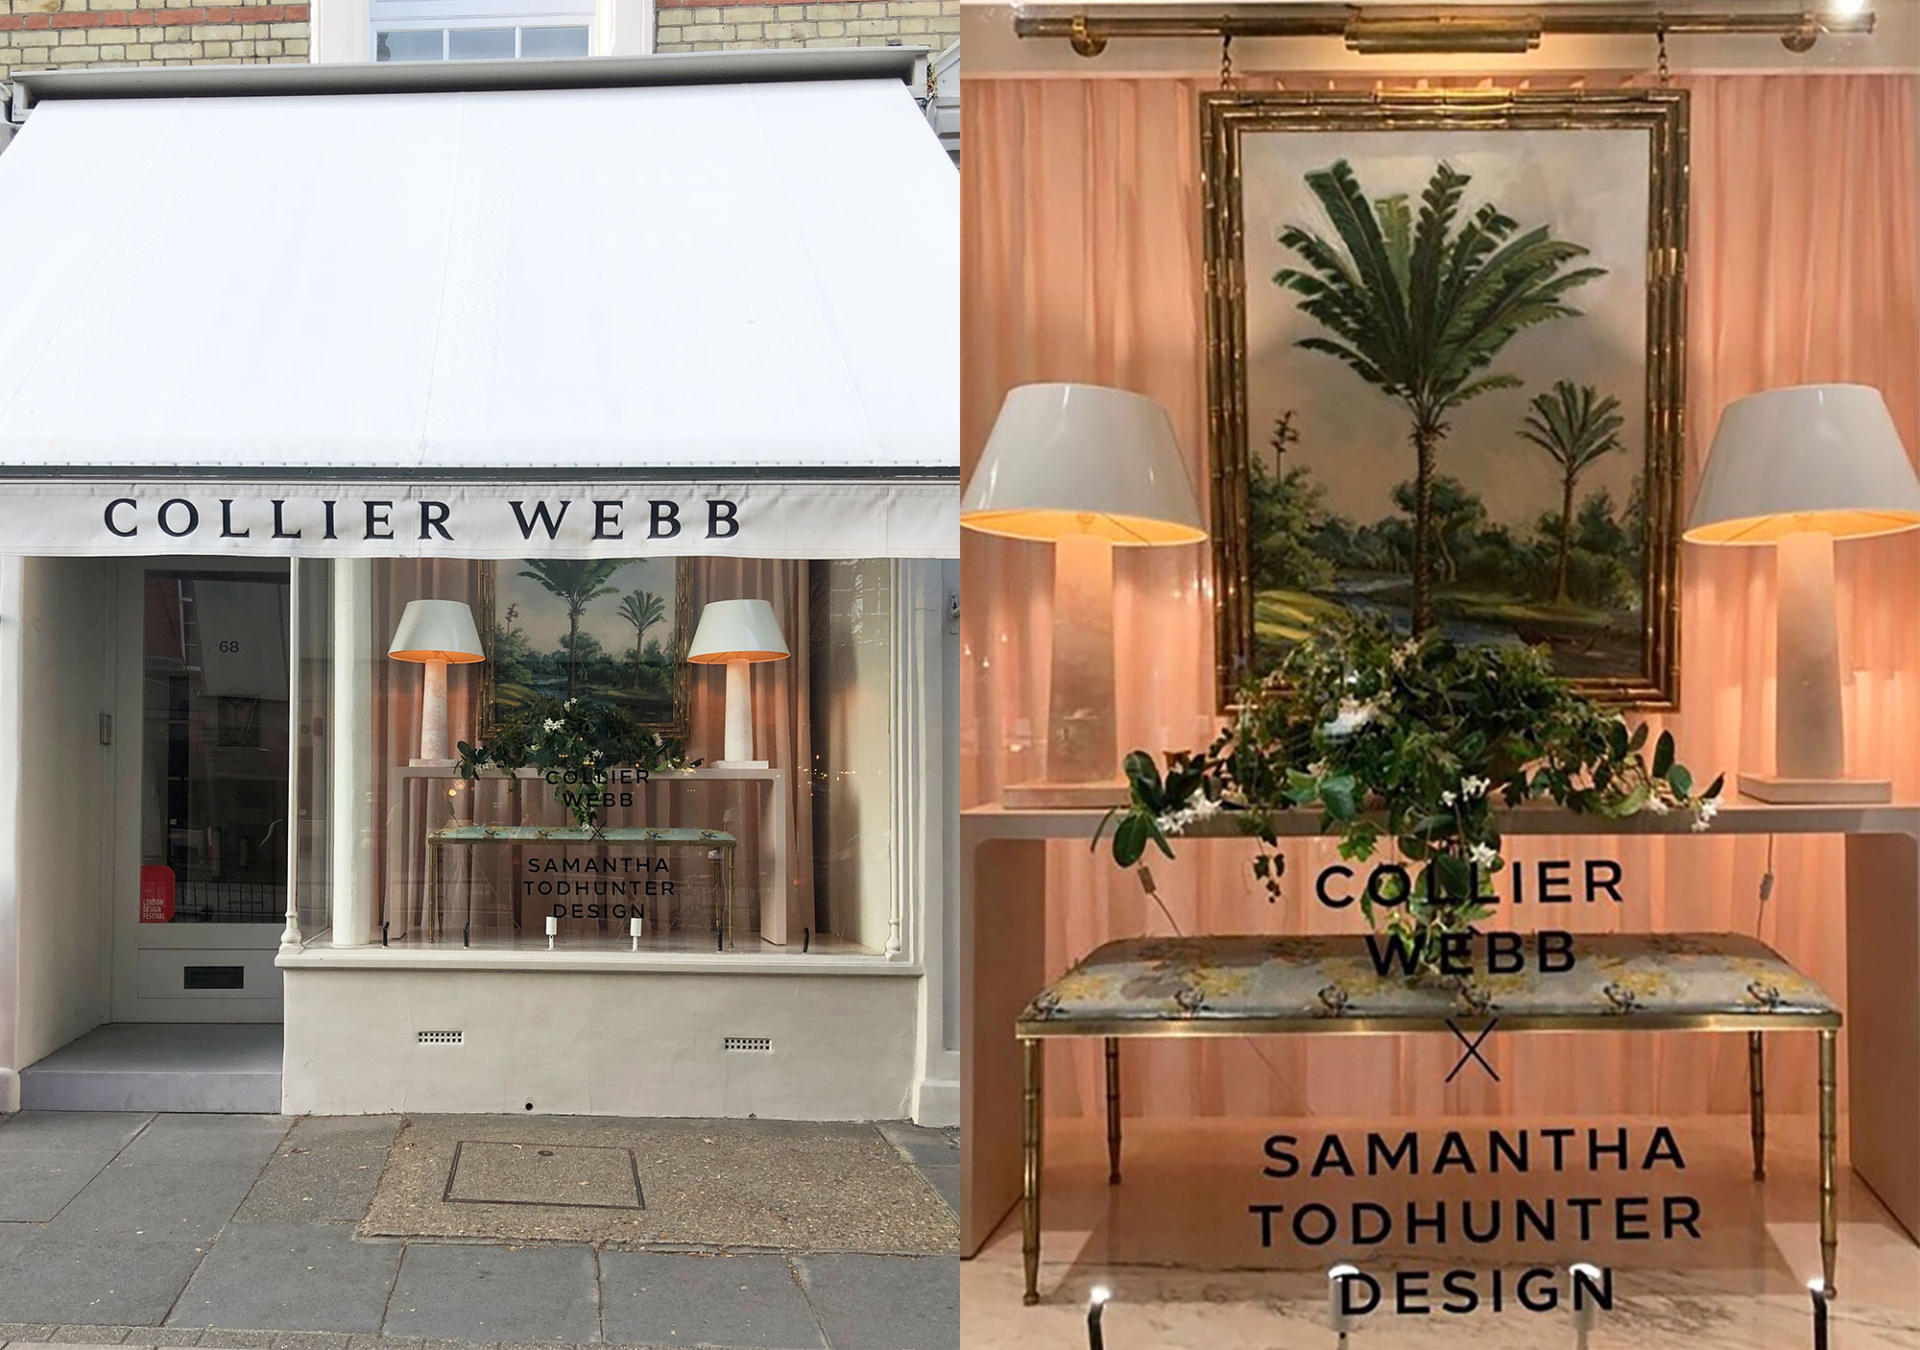 Collier Webb Pimlico Road